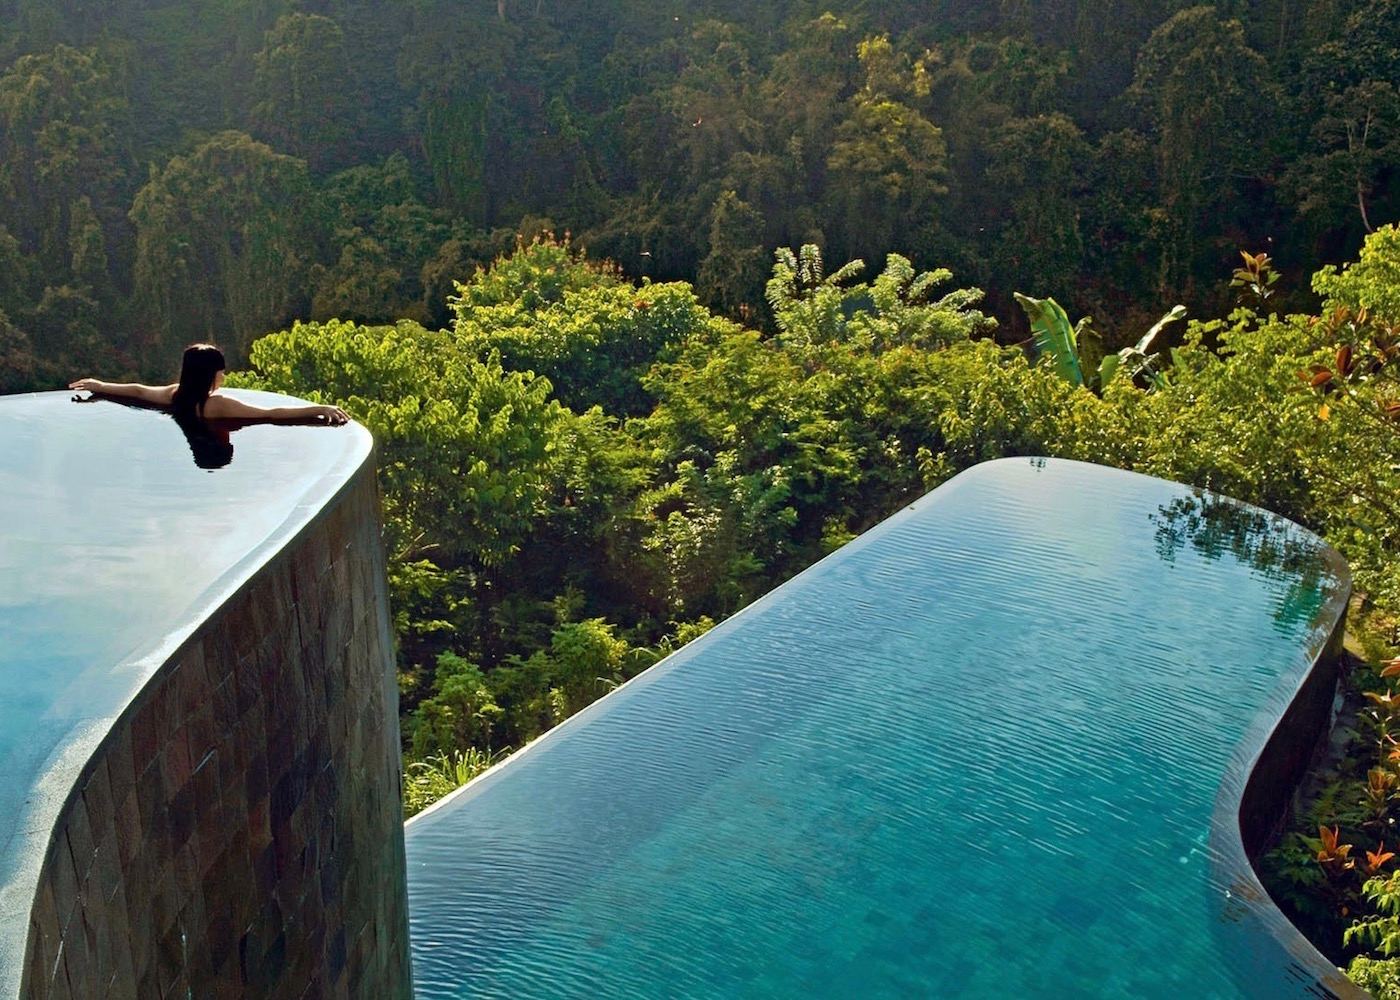 A terraced infinity pool that seems to go right into the forest with a woman on the edge.